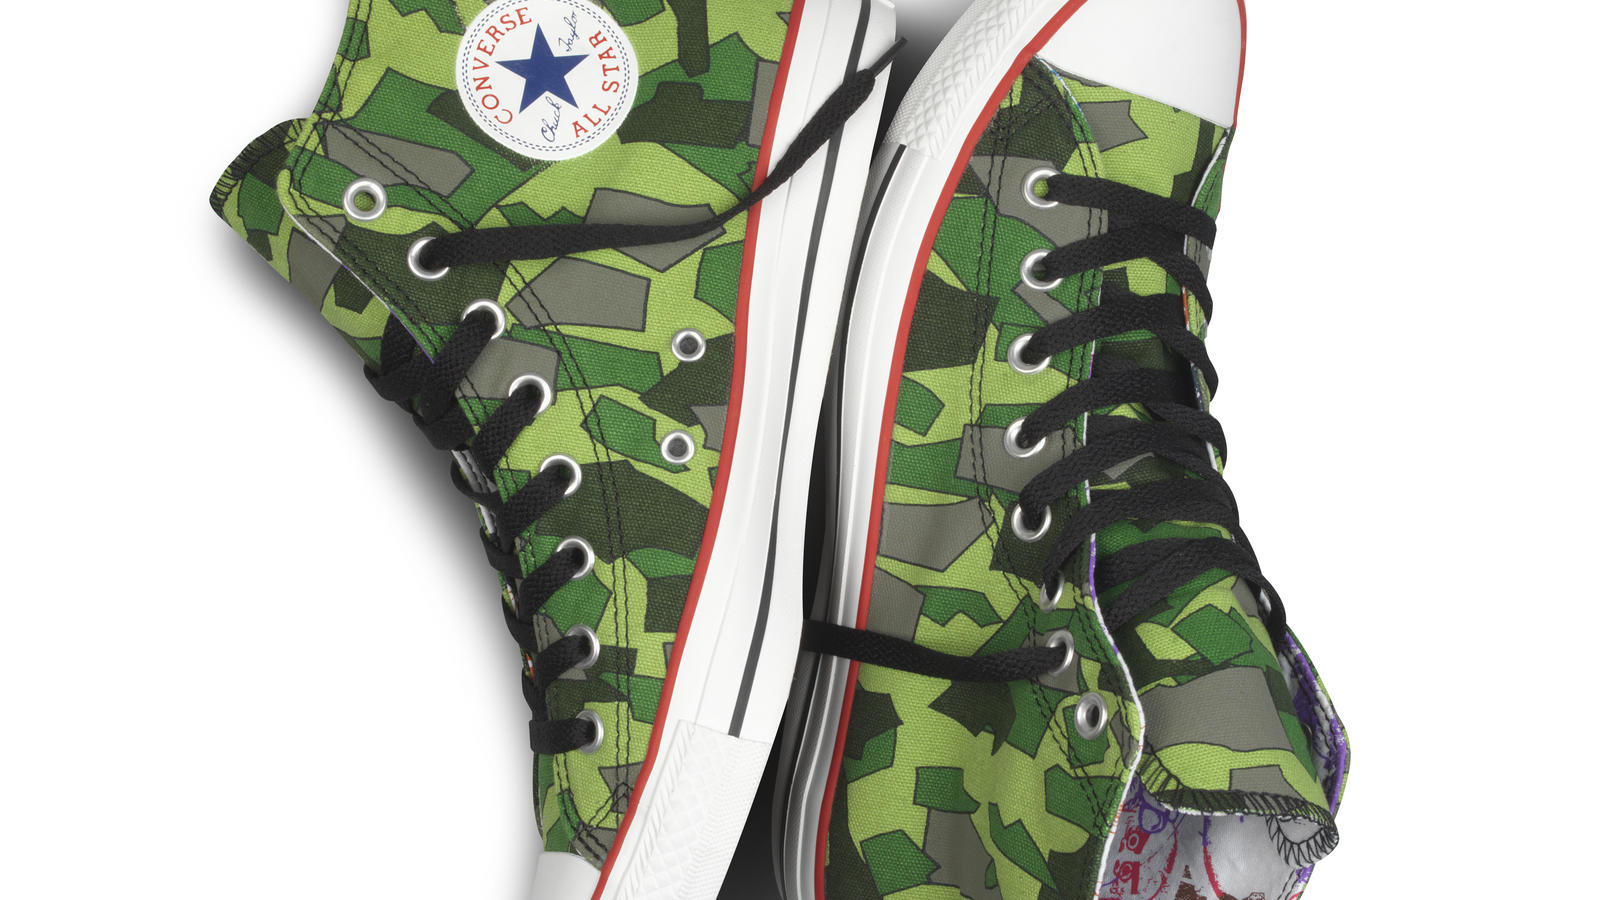 Converse announces new footwear collaboration with virtual band ... 880eef16c